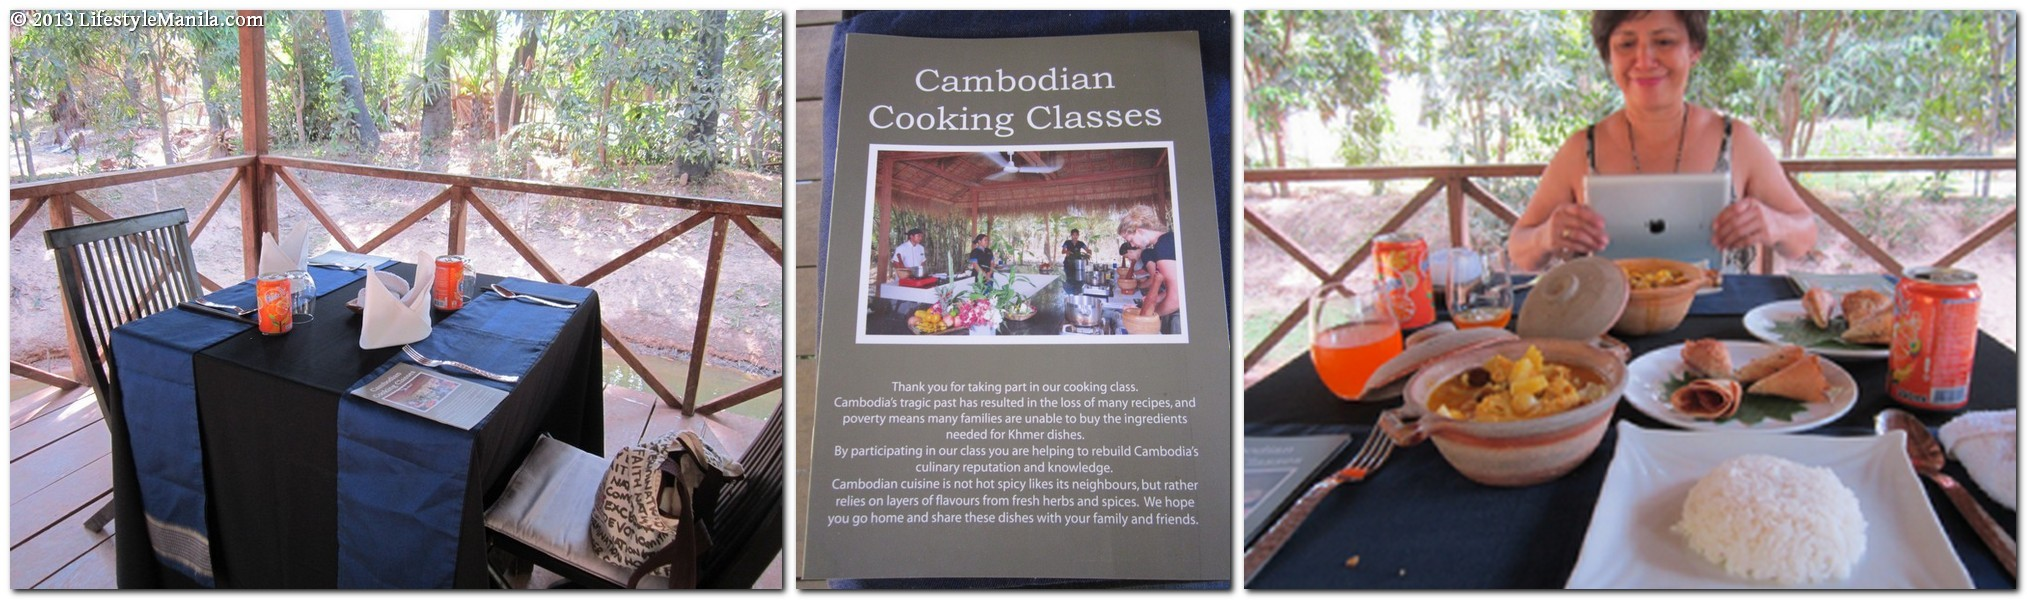 Cambodian Cooking Class